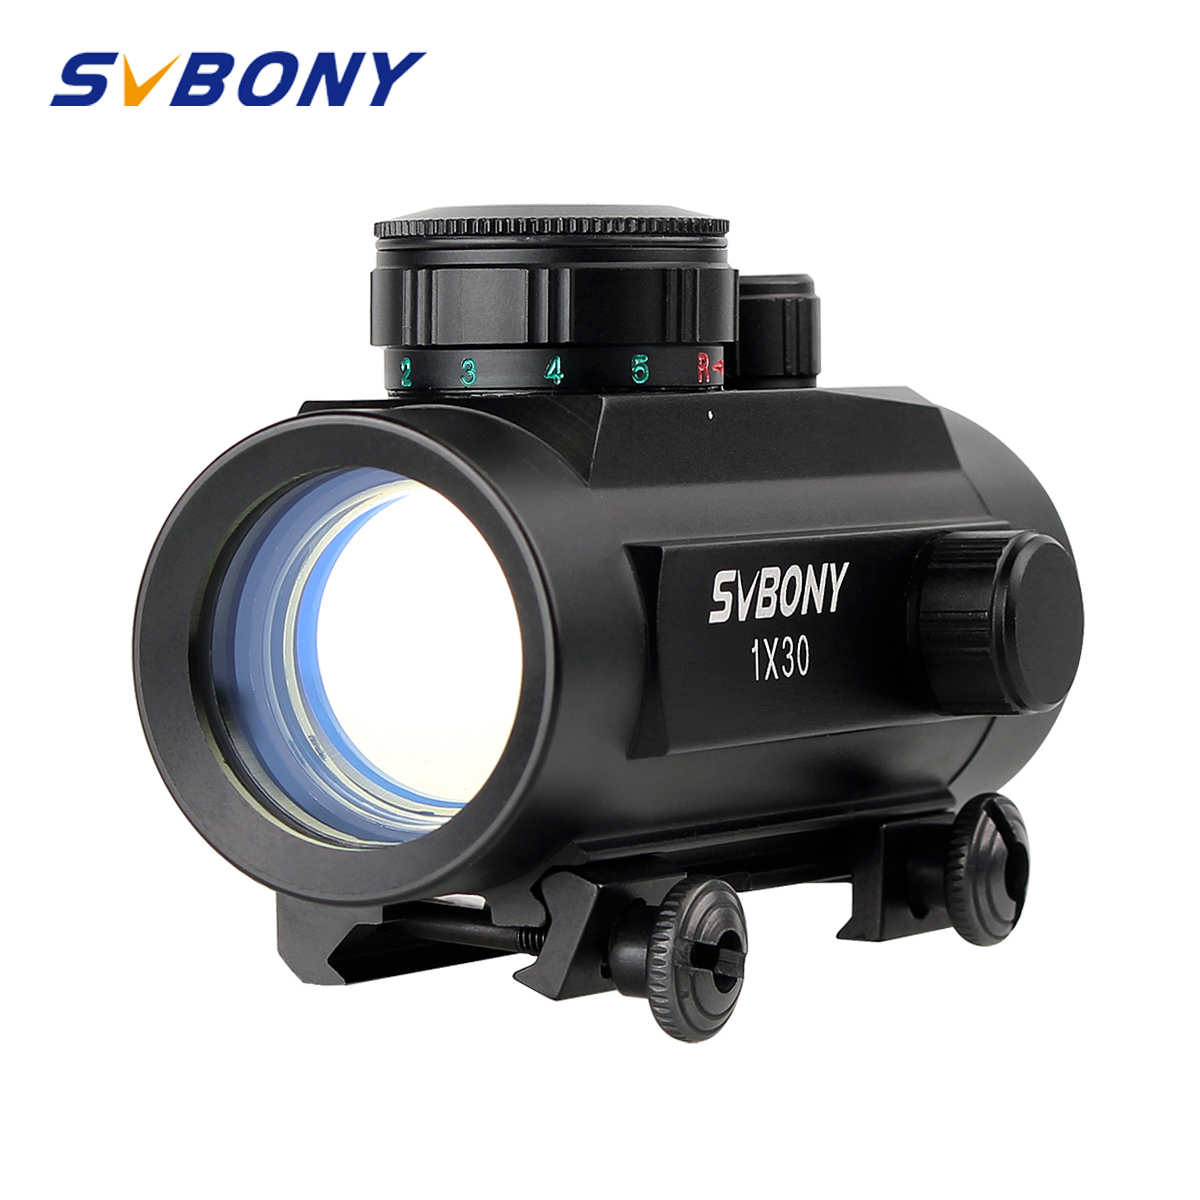 Svbony 1x30mm Sight Tactical Red Green Dot Riflescope Five Brightness Setting Reflex Sight Scope w/ 20mm Rail Mount F9148A-in Riflescopes from Sports & Entertainment